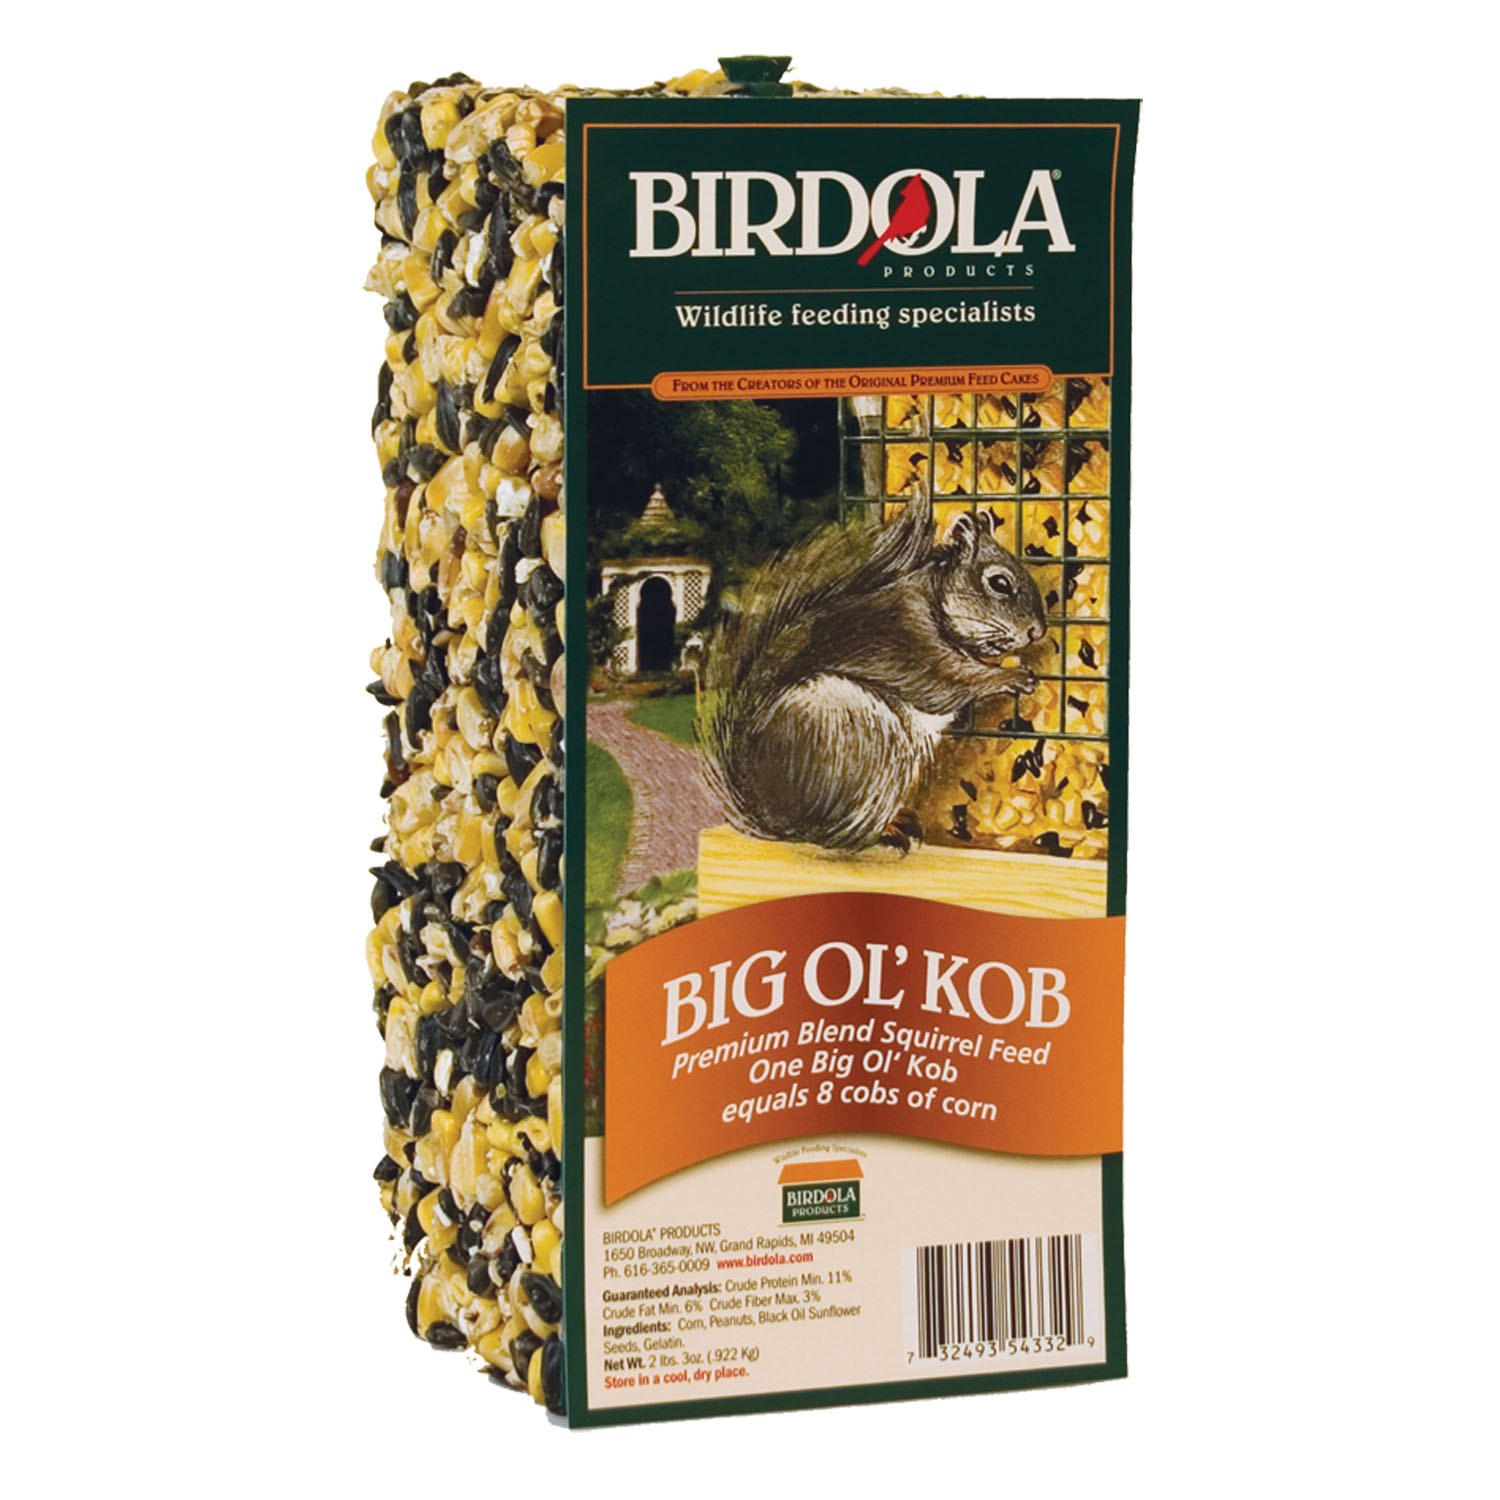 (2 Pack) BirdolaÃu201a® Big Olu0027 Kob Premium Blend Squirrel Feed, 2 Lbs    Walmart.com